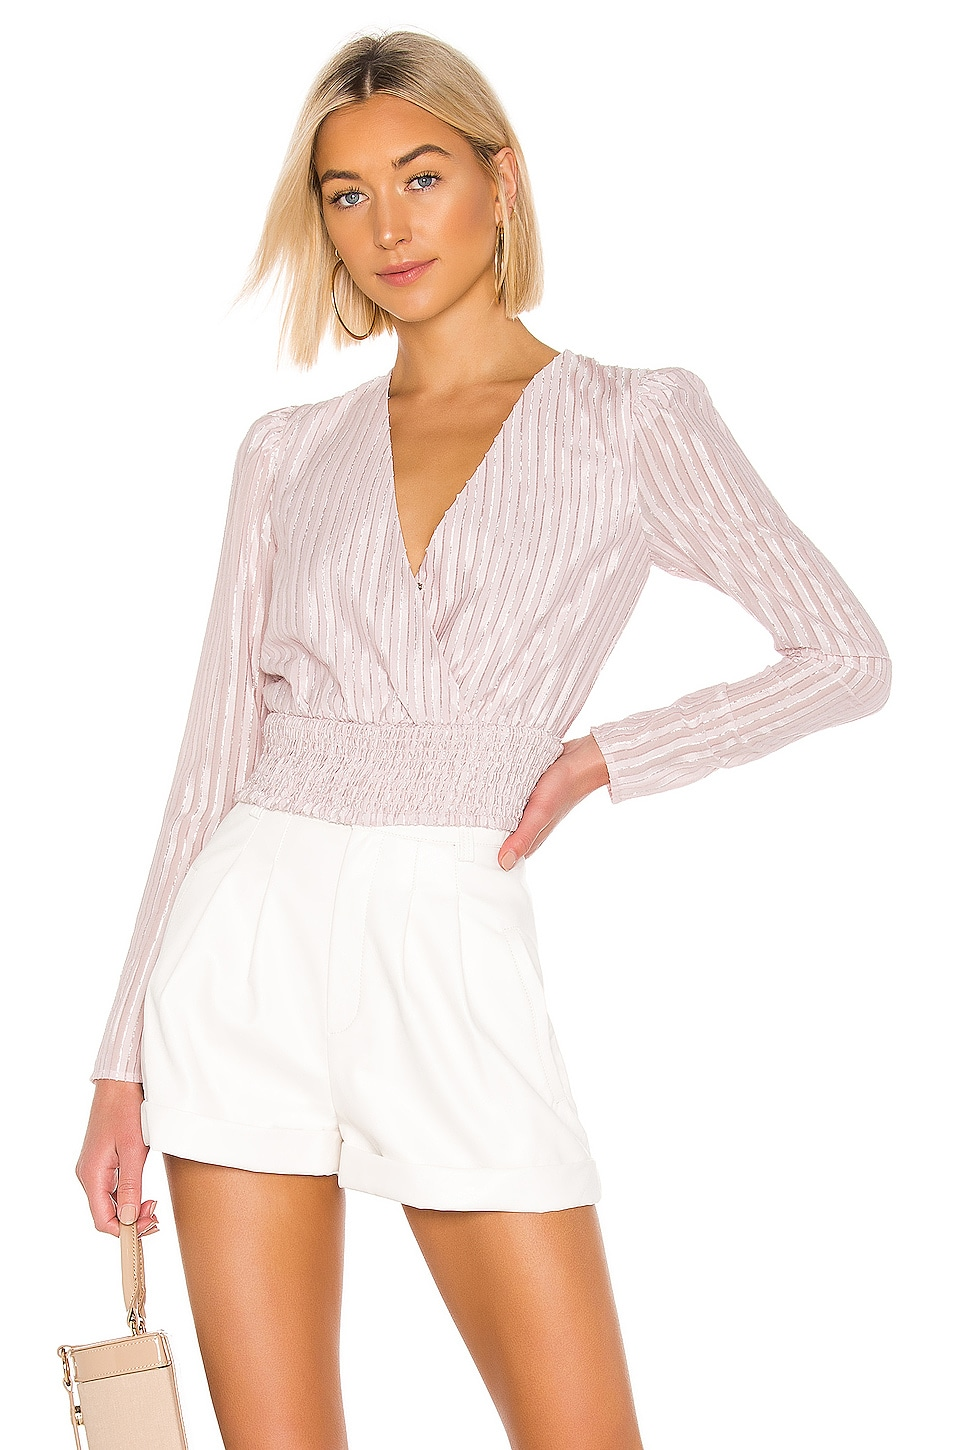 House of Harlow 1960 X REVOLVE Yiandro Blouse in Mauve